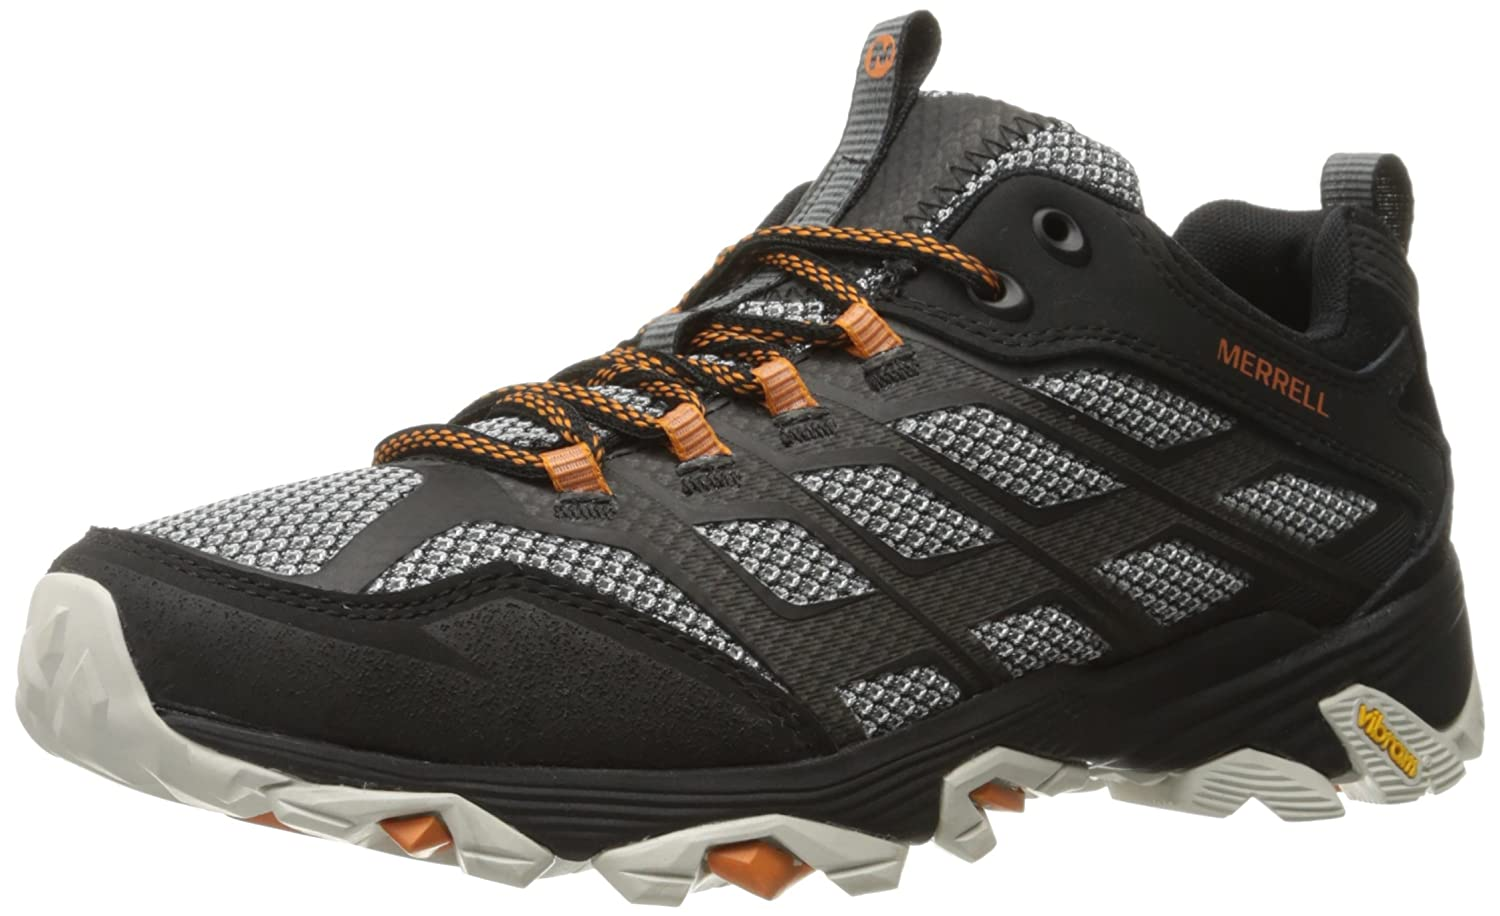 Merrell Men's Moab FST Hiking Shoe B0195L8JSY 10 W US|Black